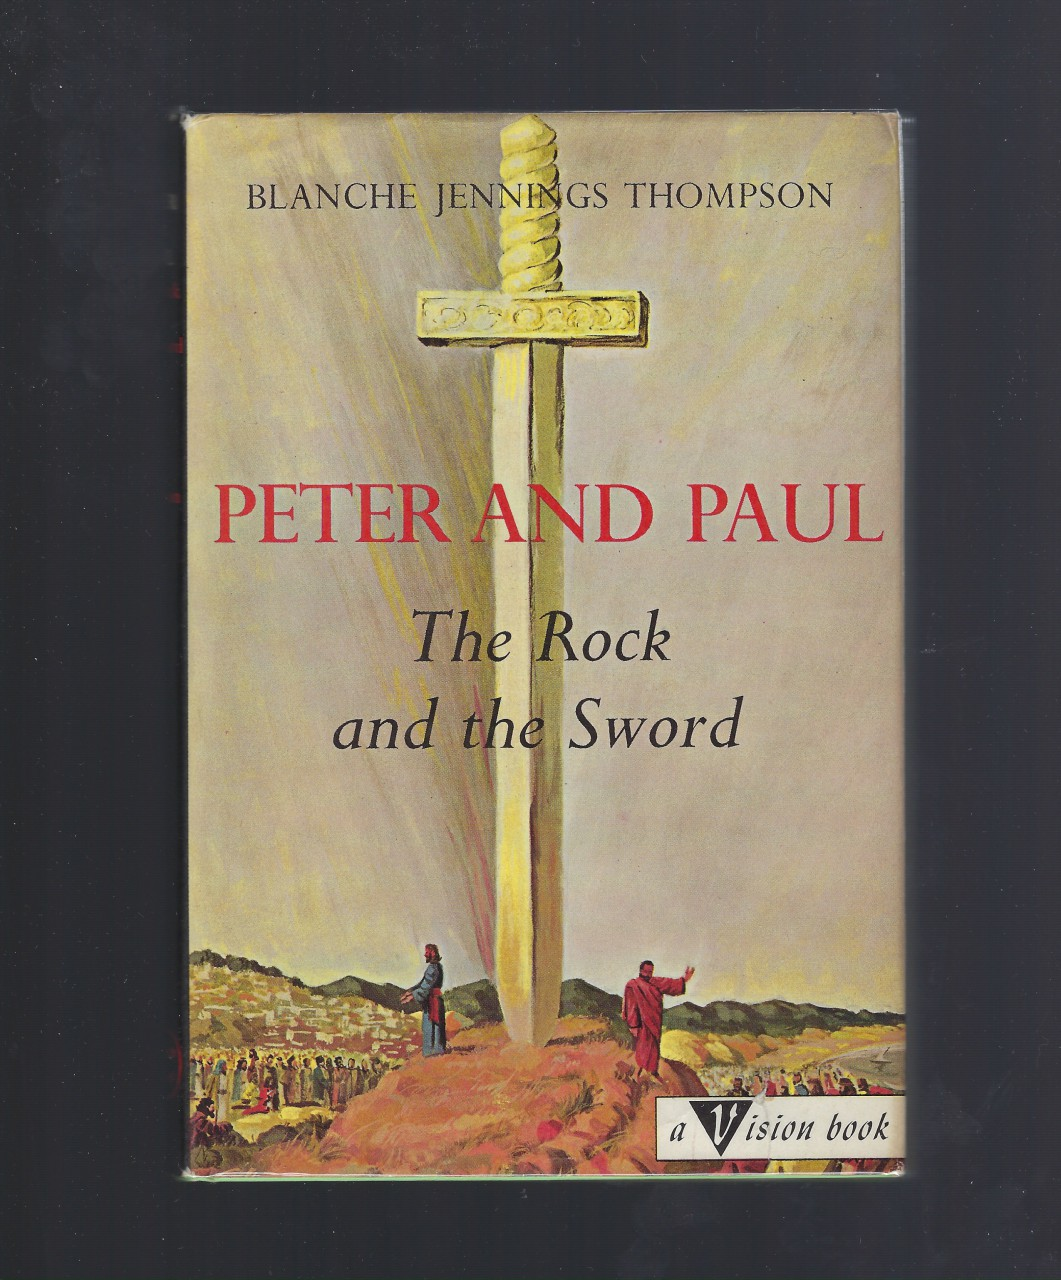 Peter and Paul The Rock and the Sword Vision Catholic HB/DJ, Blanche Jennings Thompson